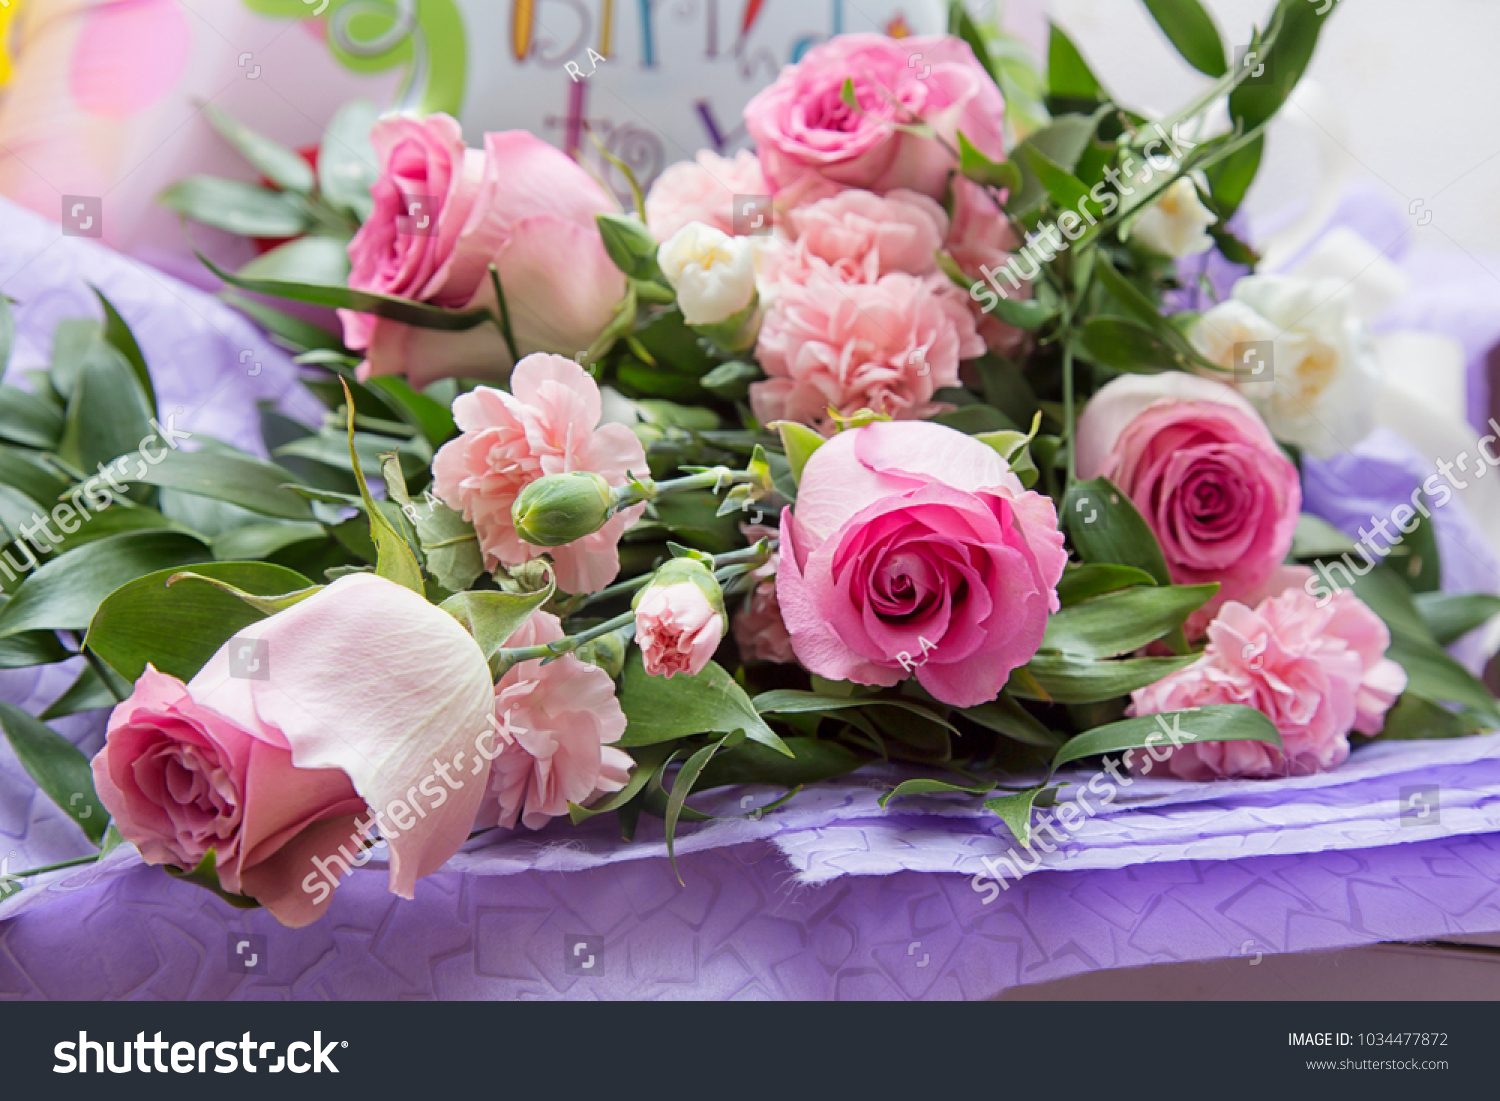 A bouquet of flowers from roses and balloons is a gift for a happy id 1034477872 izmirmasajfo